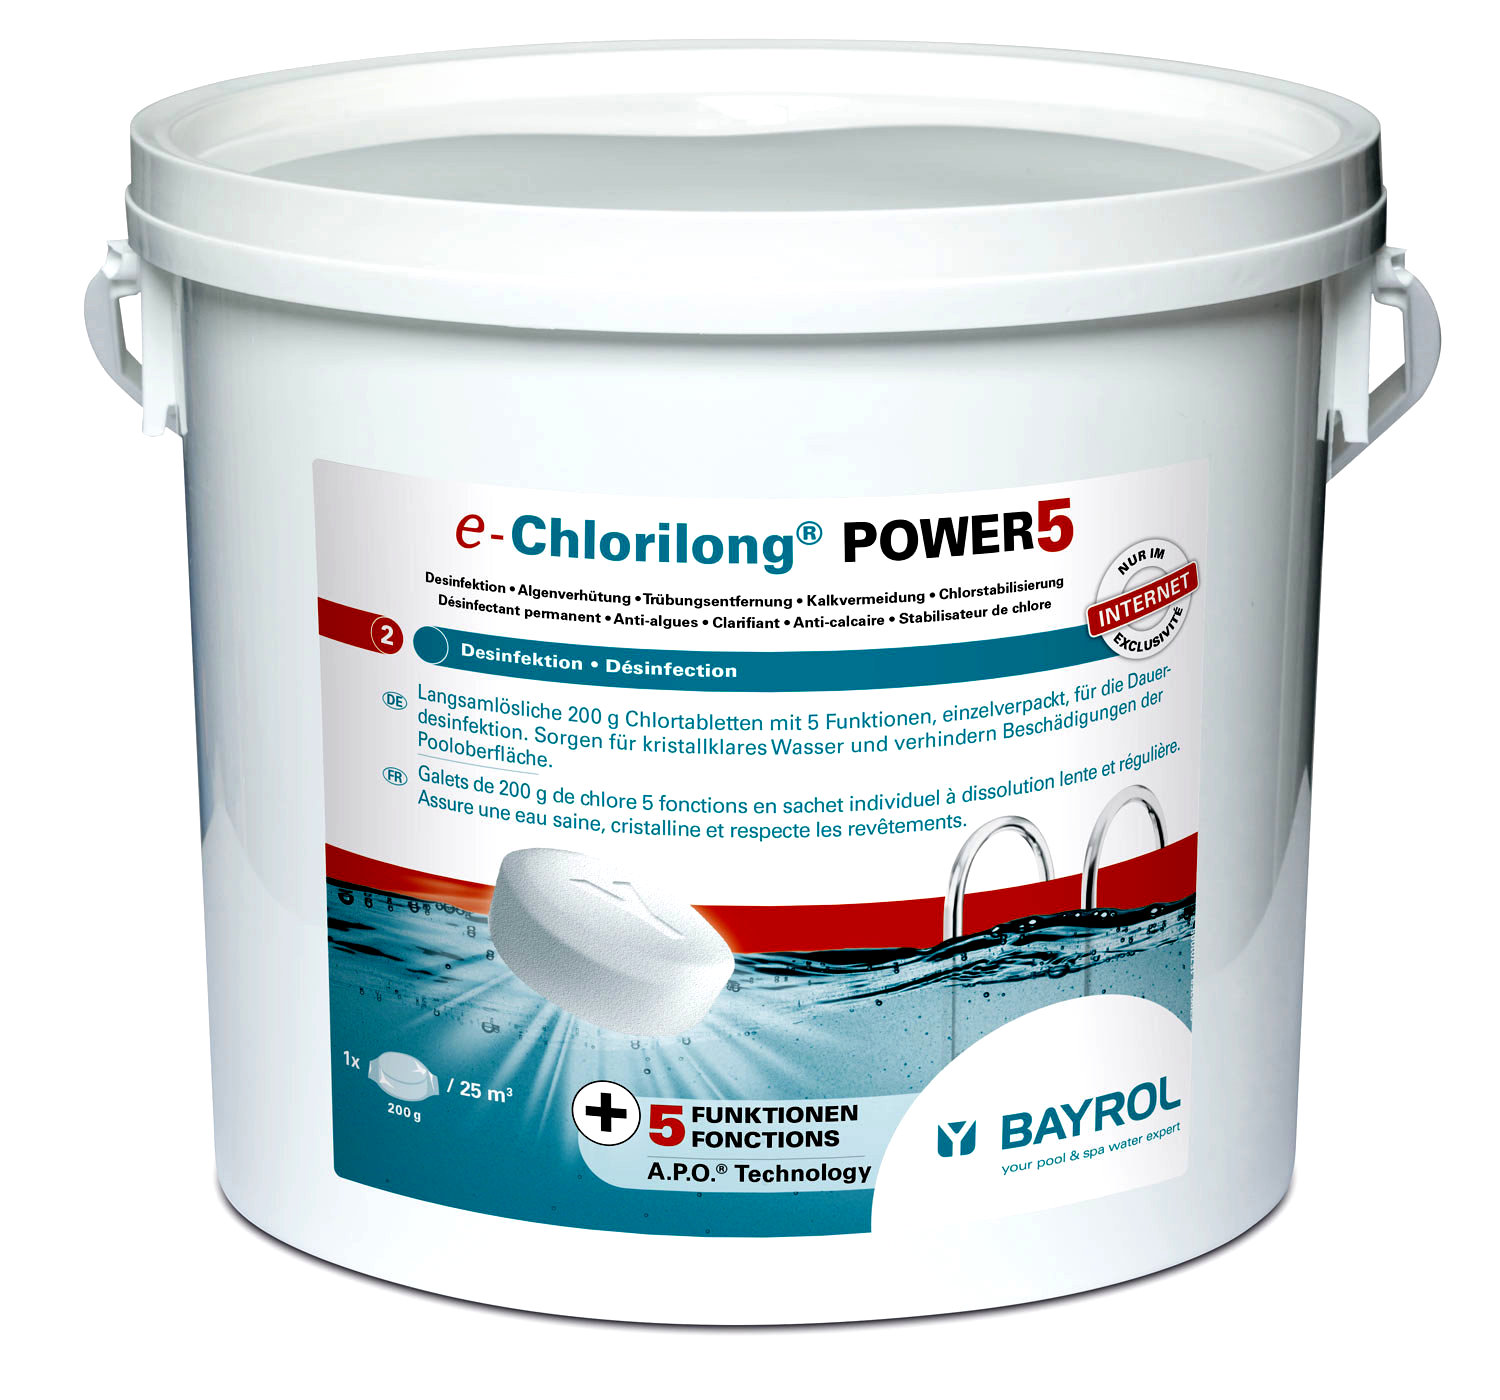 BAYROL e-Chlorilong® POWER 5